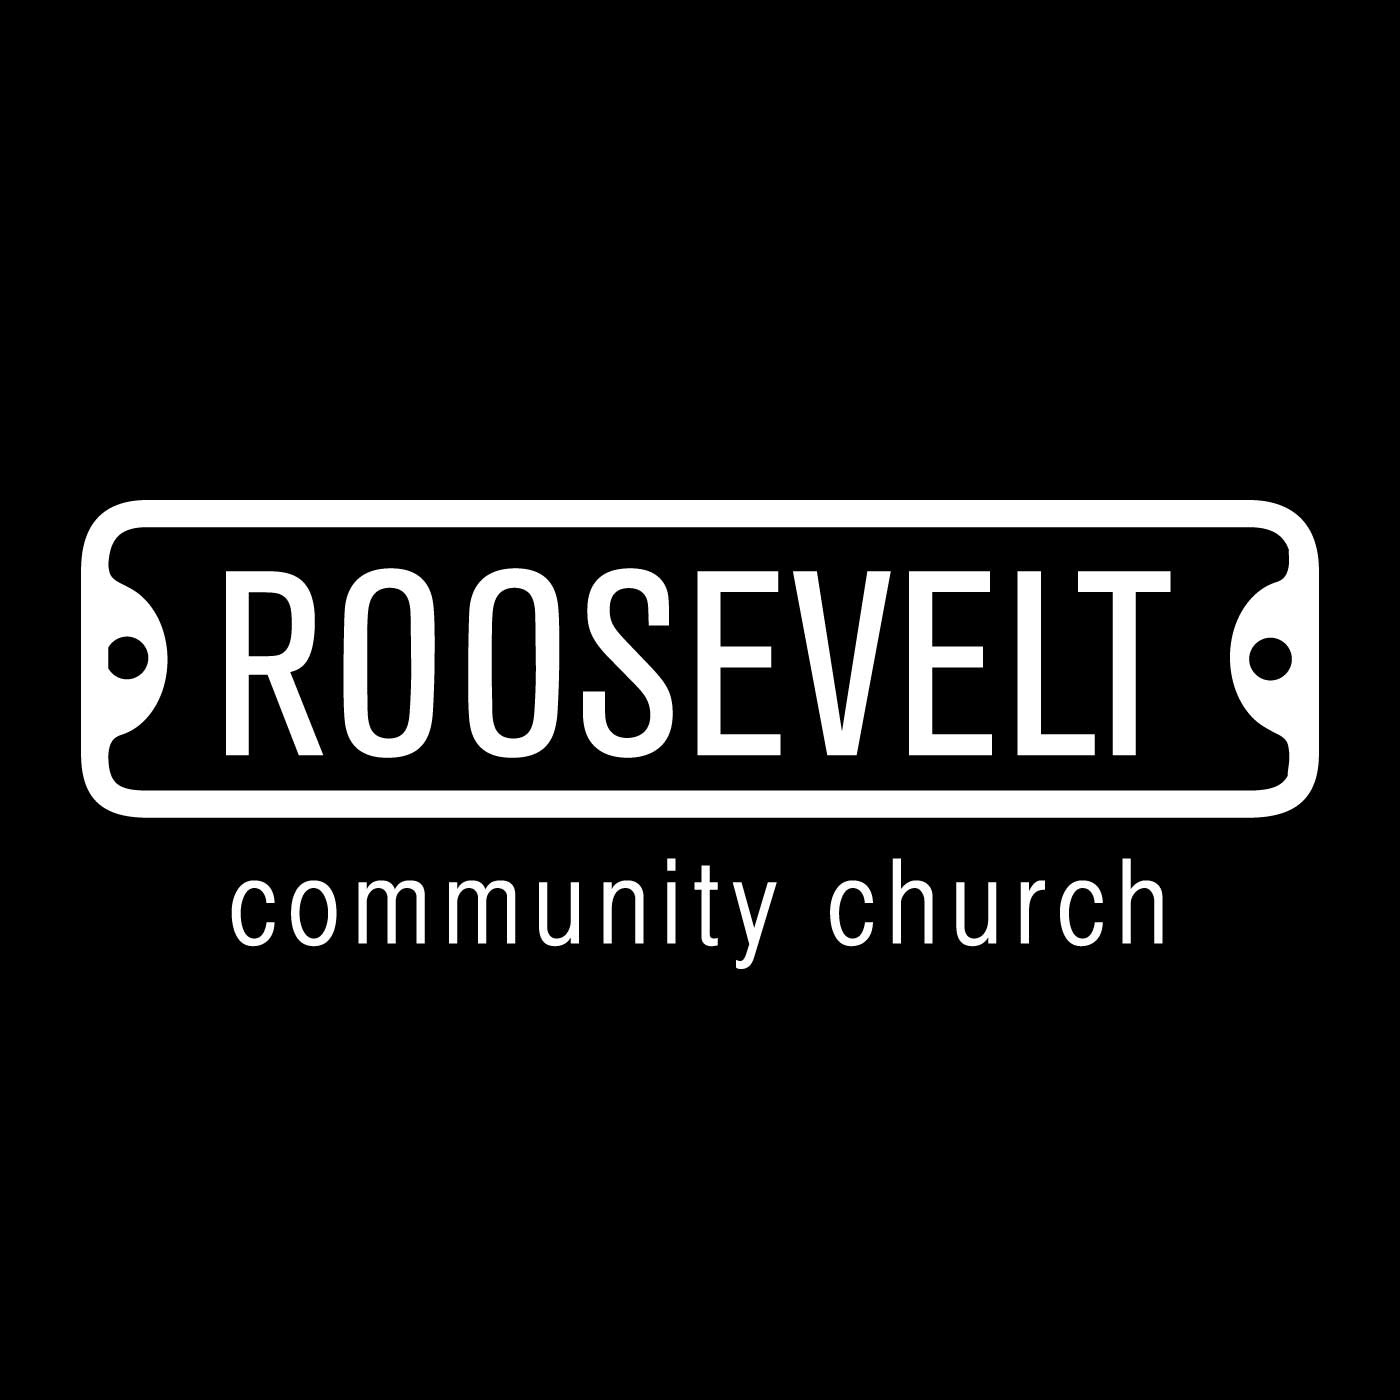 Roosevelt Community Church